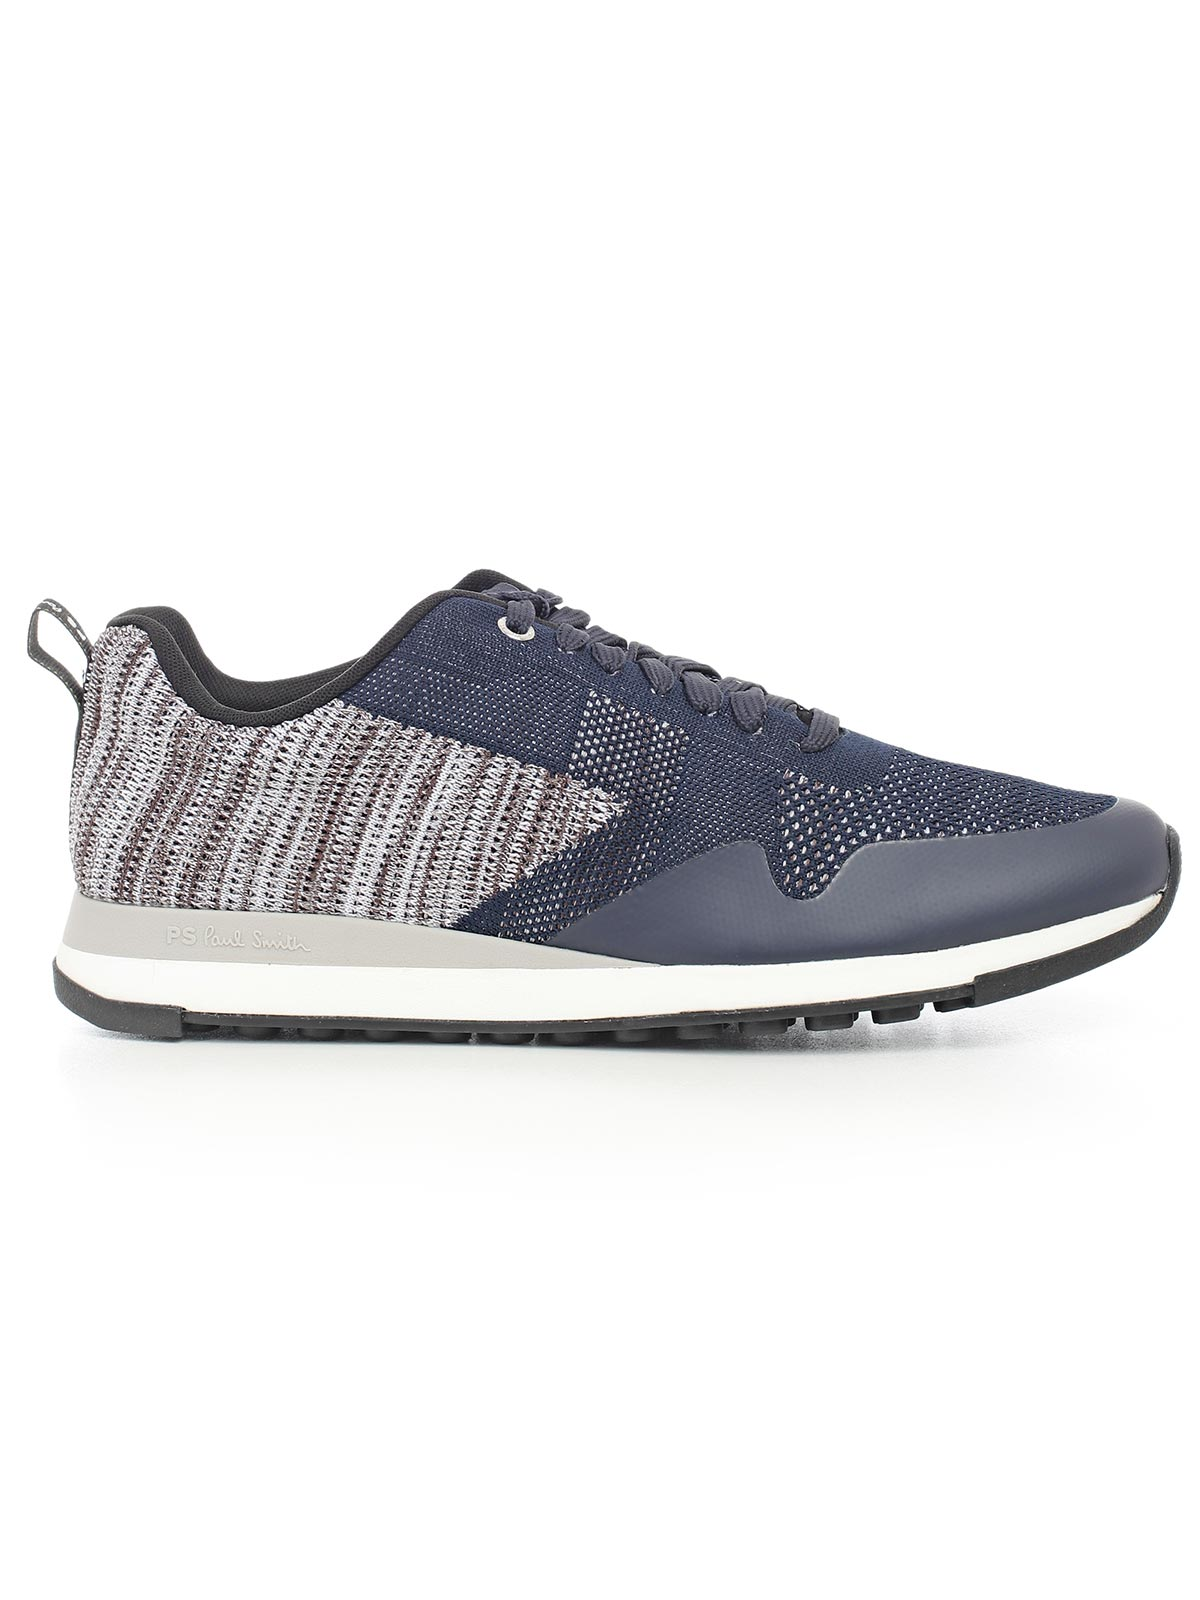 Picture of PS PAUL SMITH Sneakers